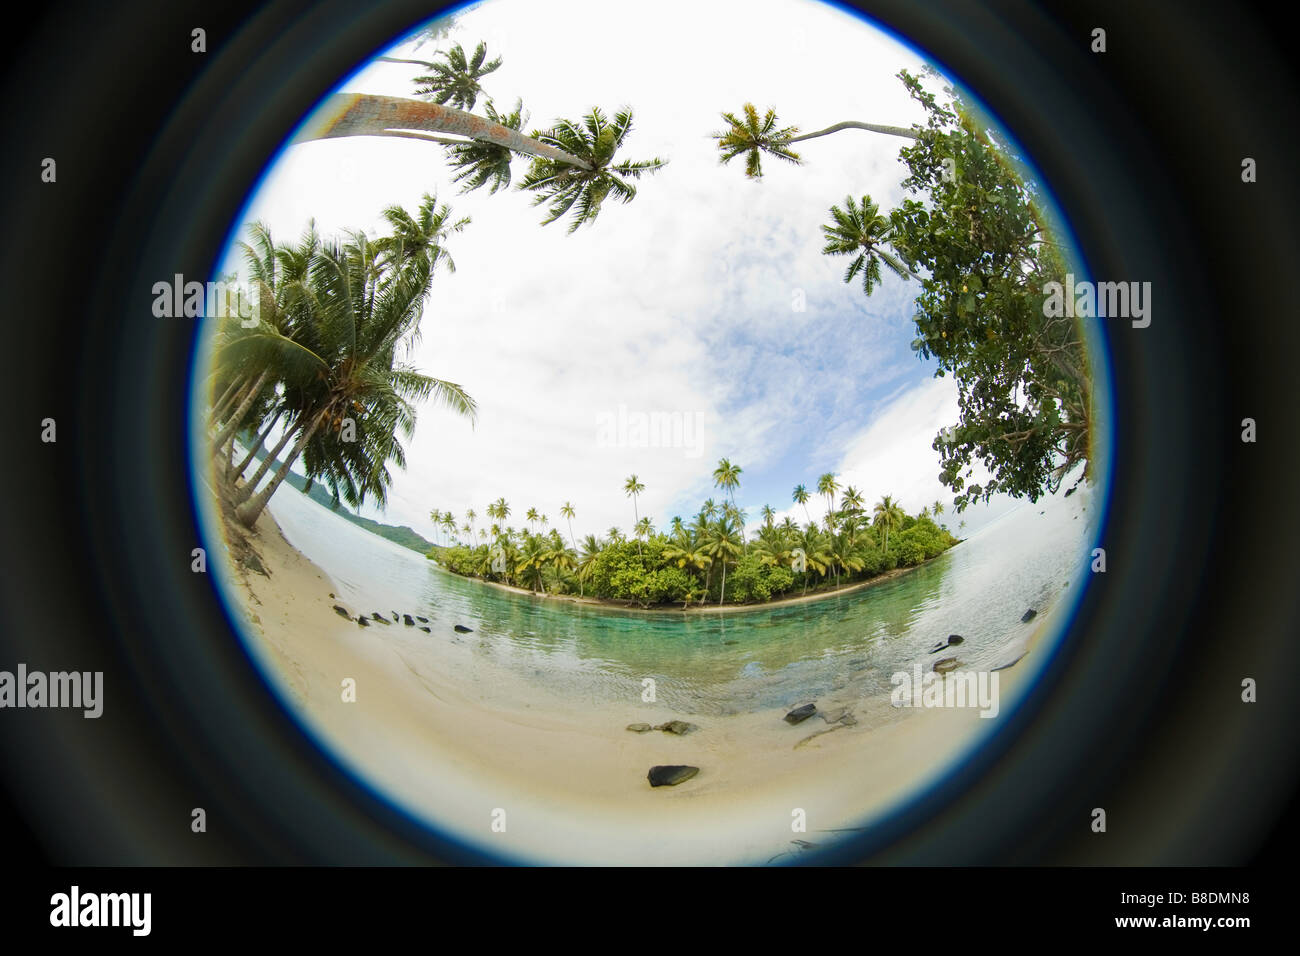 Fisheye perspective of island - Stock Image